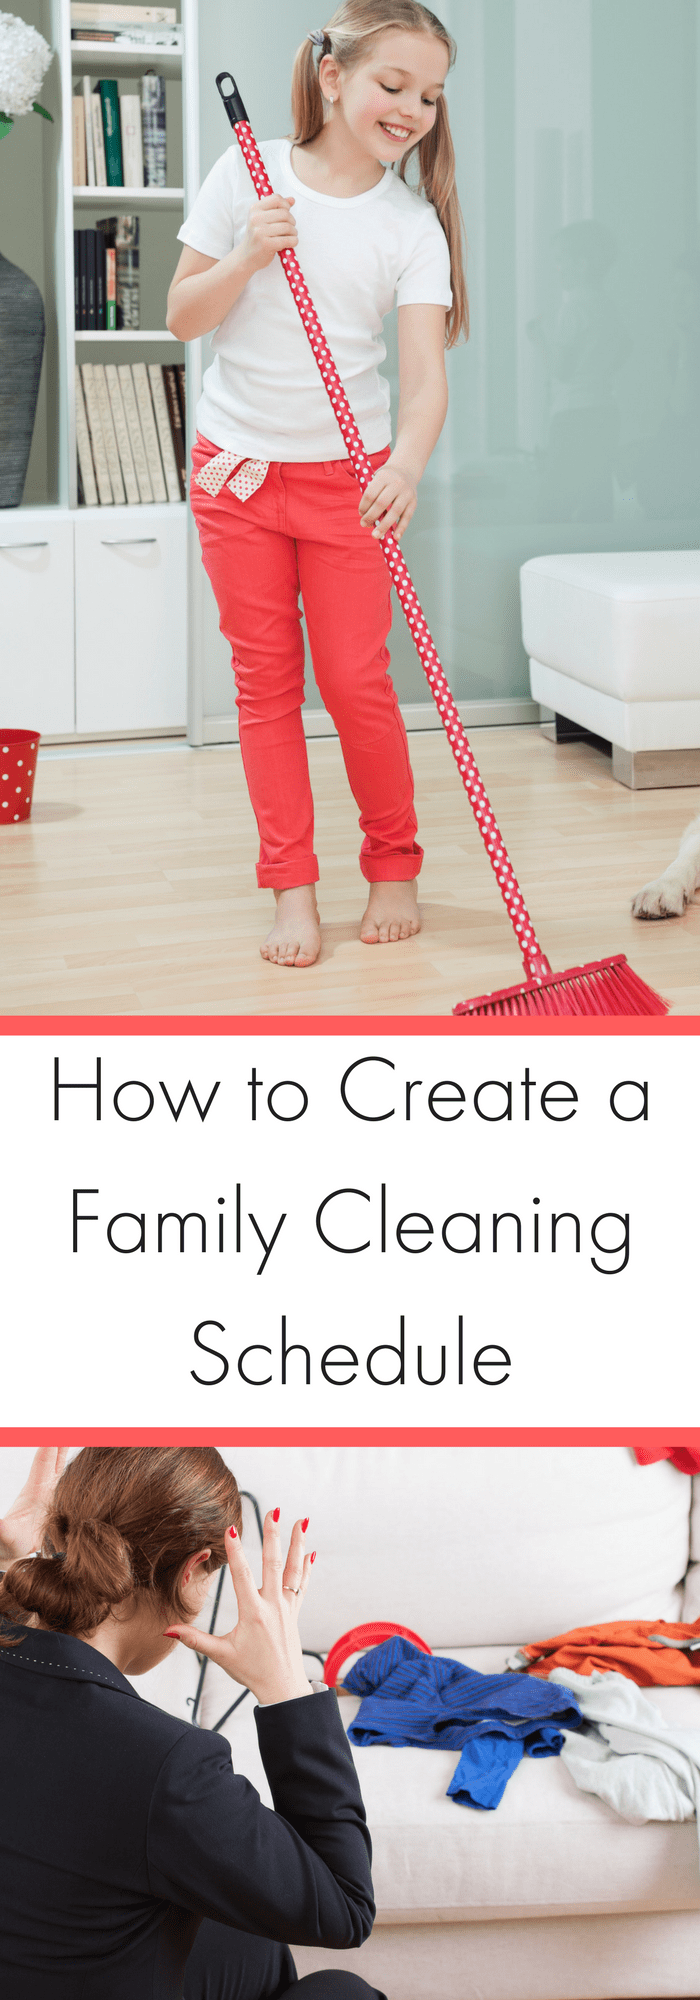 How to Create a Weekly Family Cleaning Schedule 4